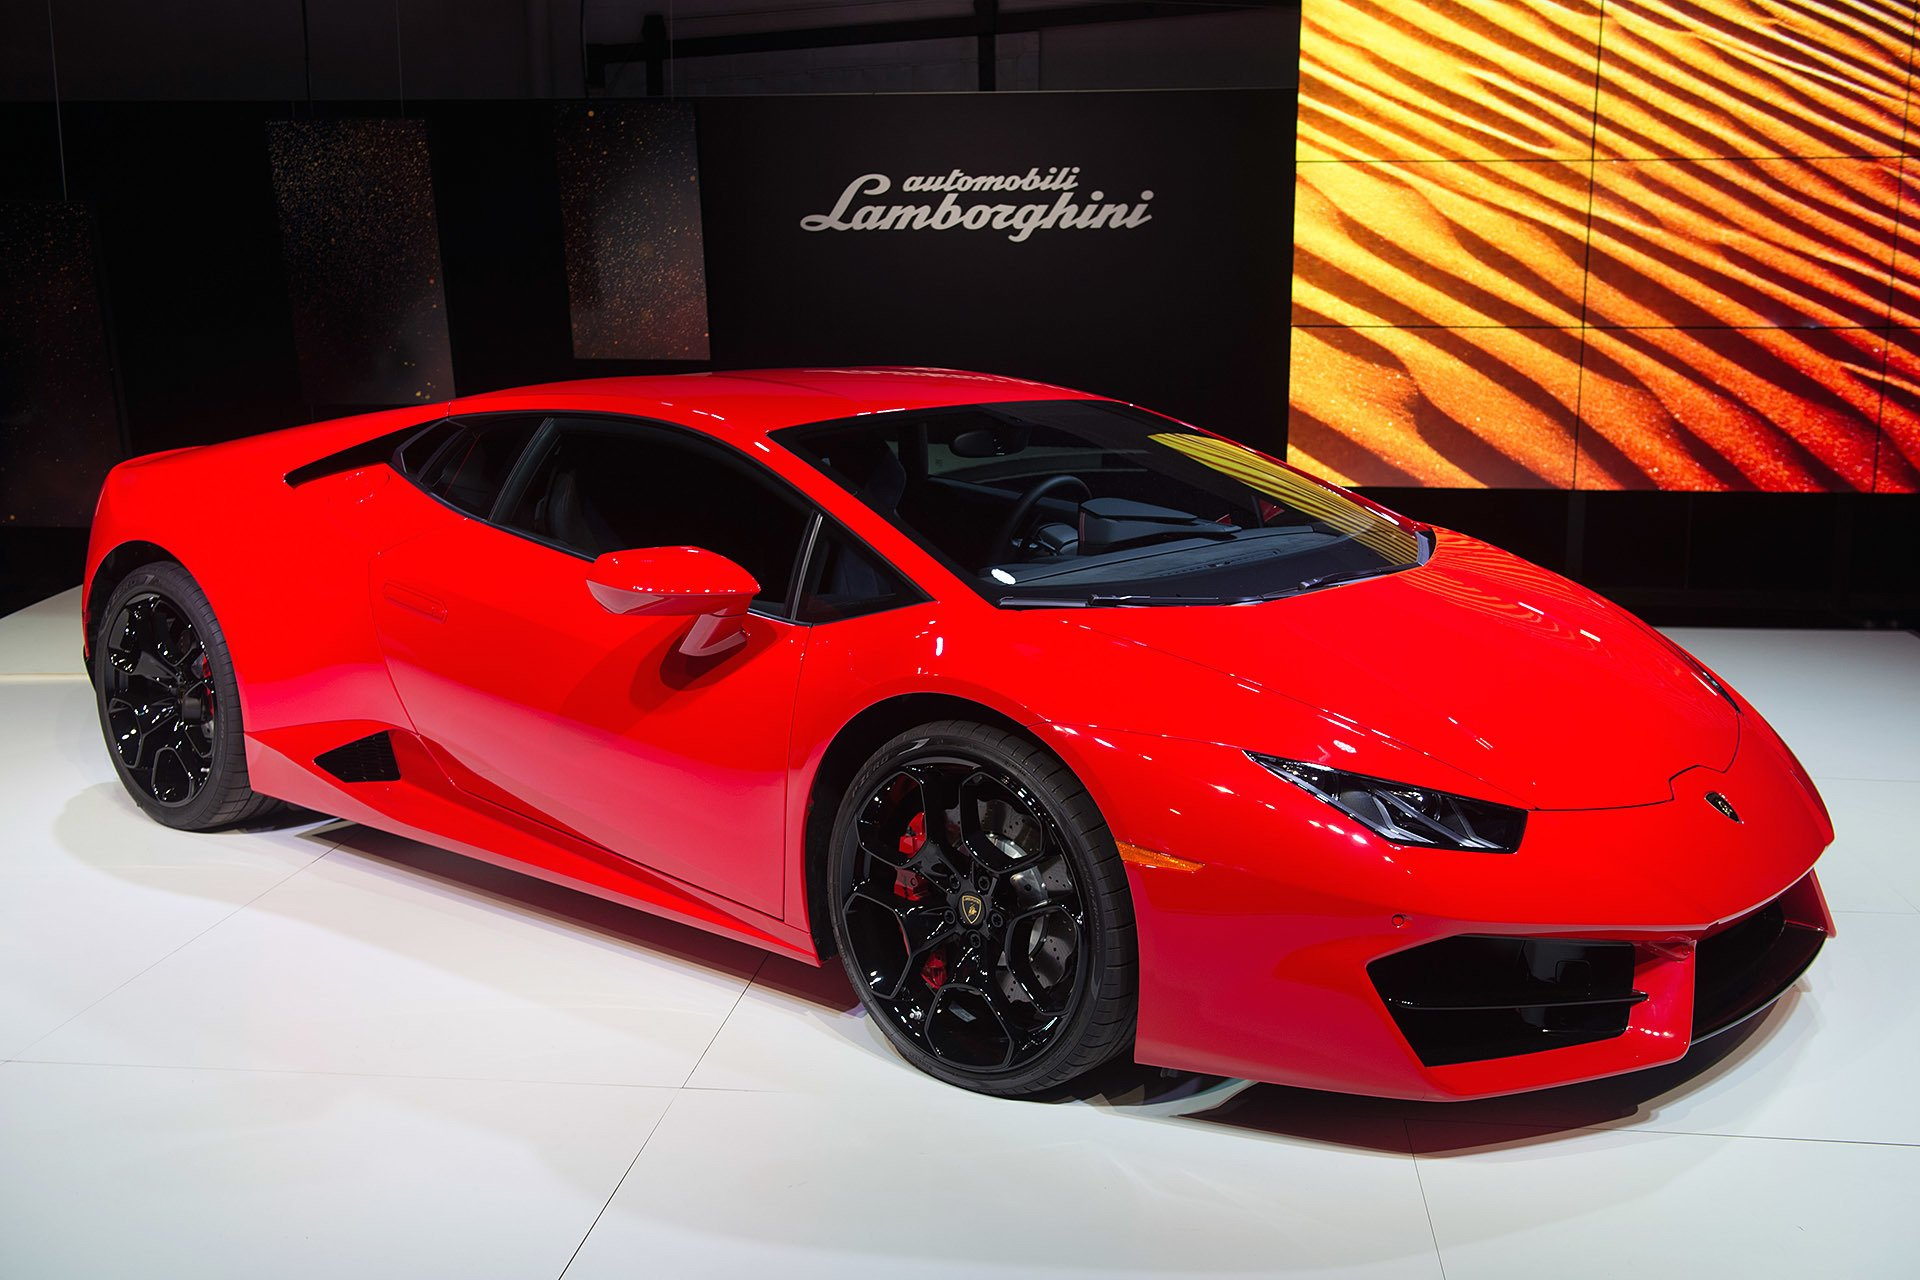 2016 cars huracan lamborghini lp580 2 red supercars wallpaper 1920x1280 838663 wallpaperup. Black Bedroom Furniture Sets. Home Design Ideas